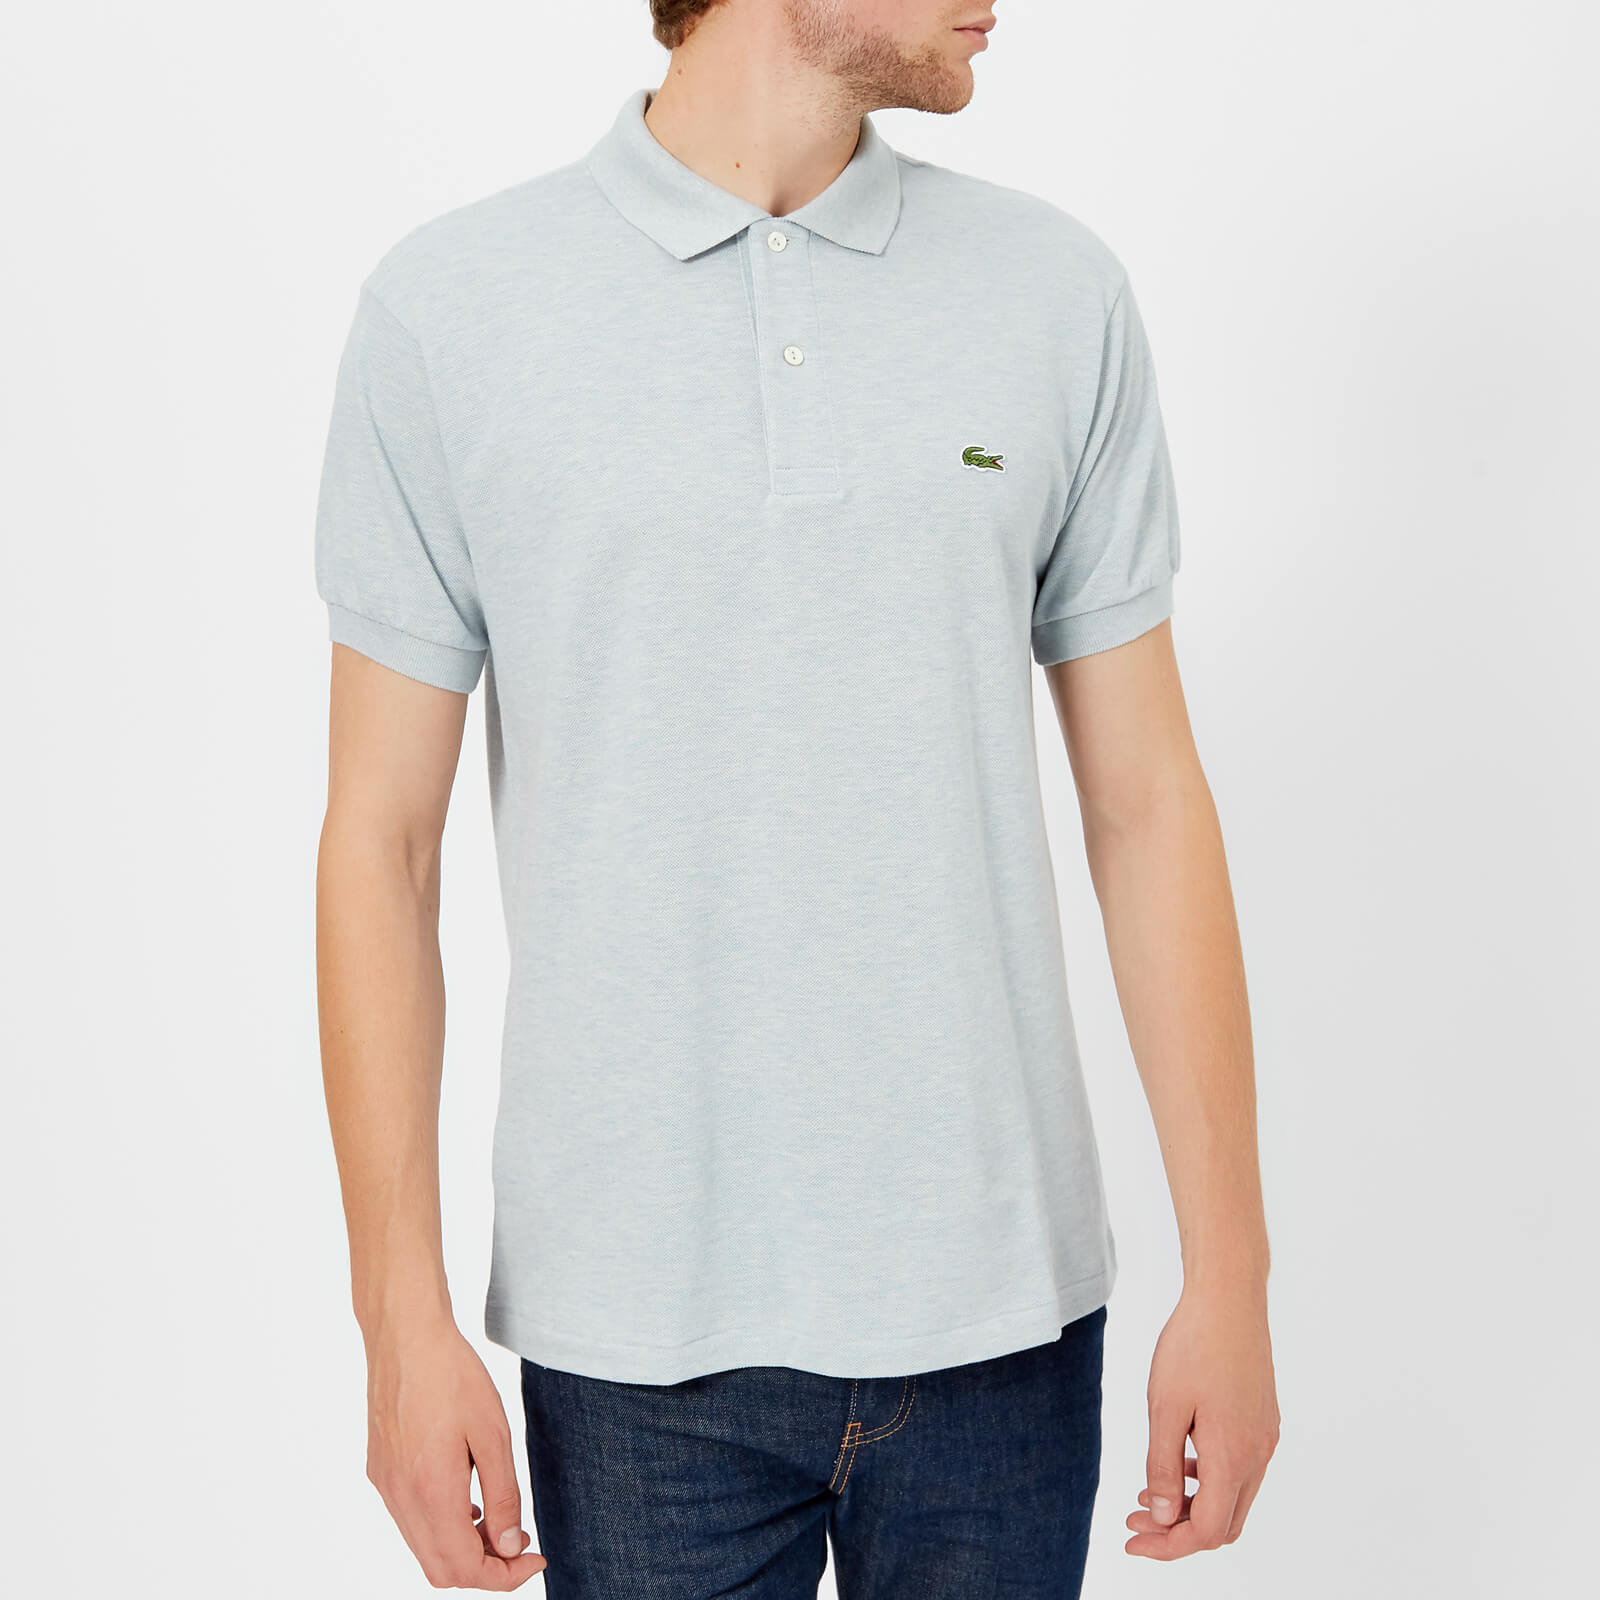 f4119173 Lacoste Men's Classic Fit Polo Shirt - Junk Blue Chine